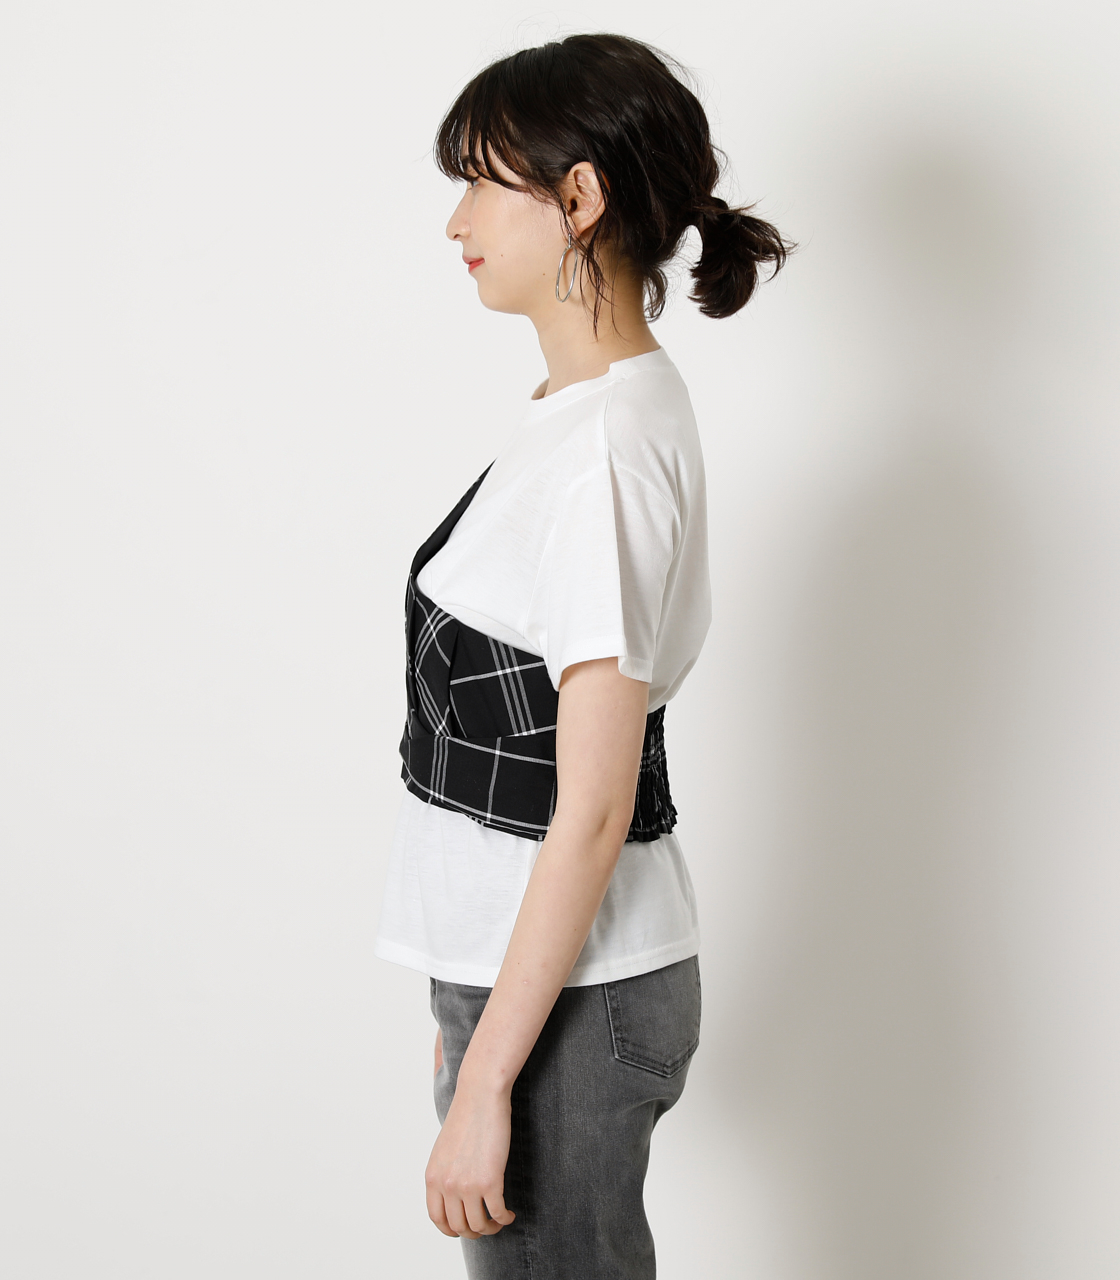 ONESHOULDER CHECK BUSTIER TOPS/ワンショルダーチェックビジタートップス 詳細画像 柄BLK 5